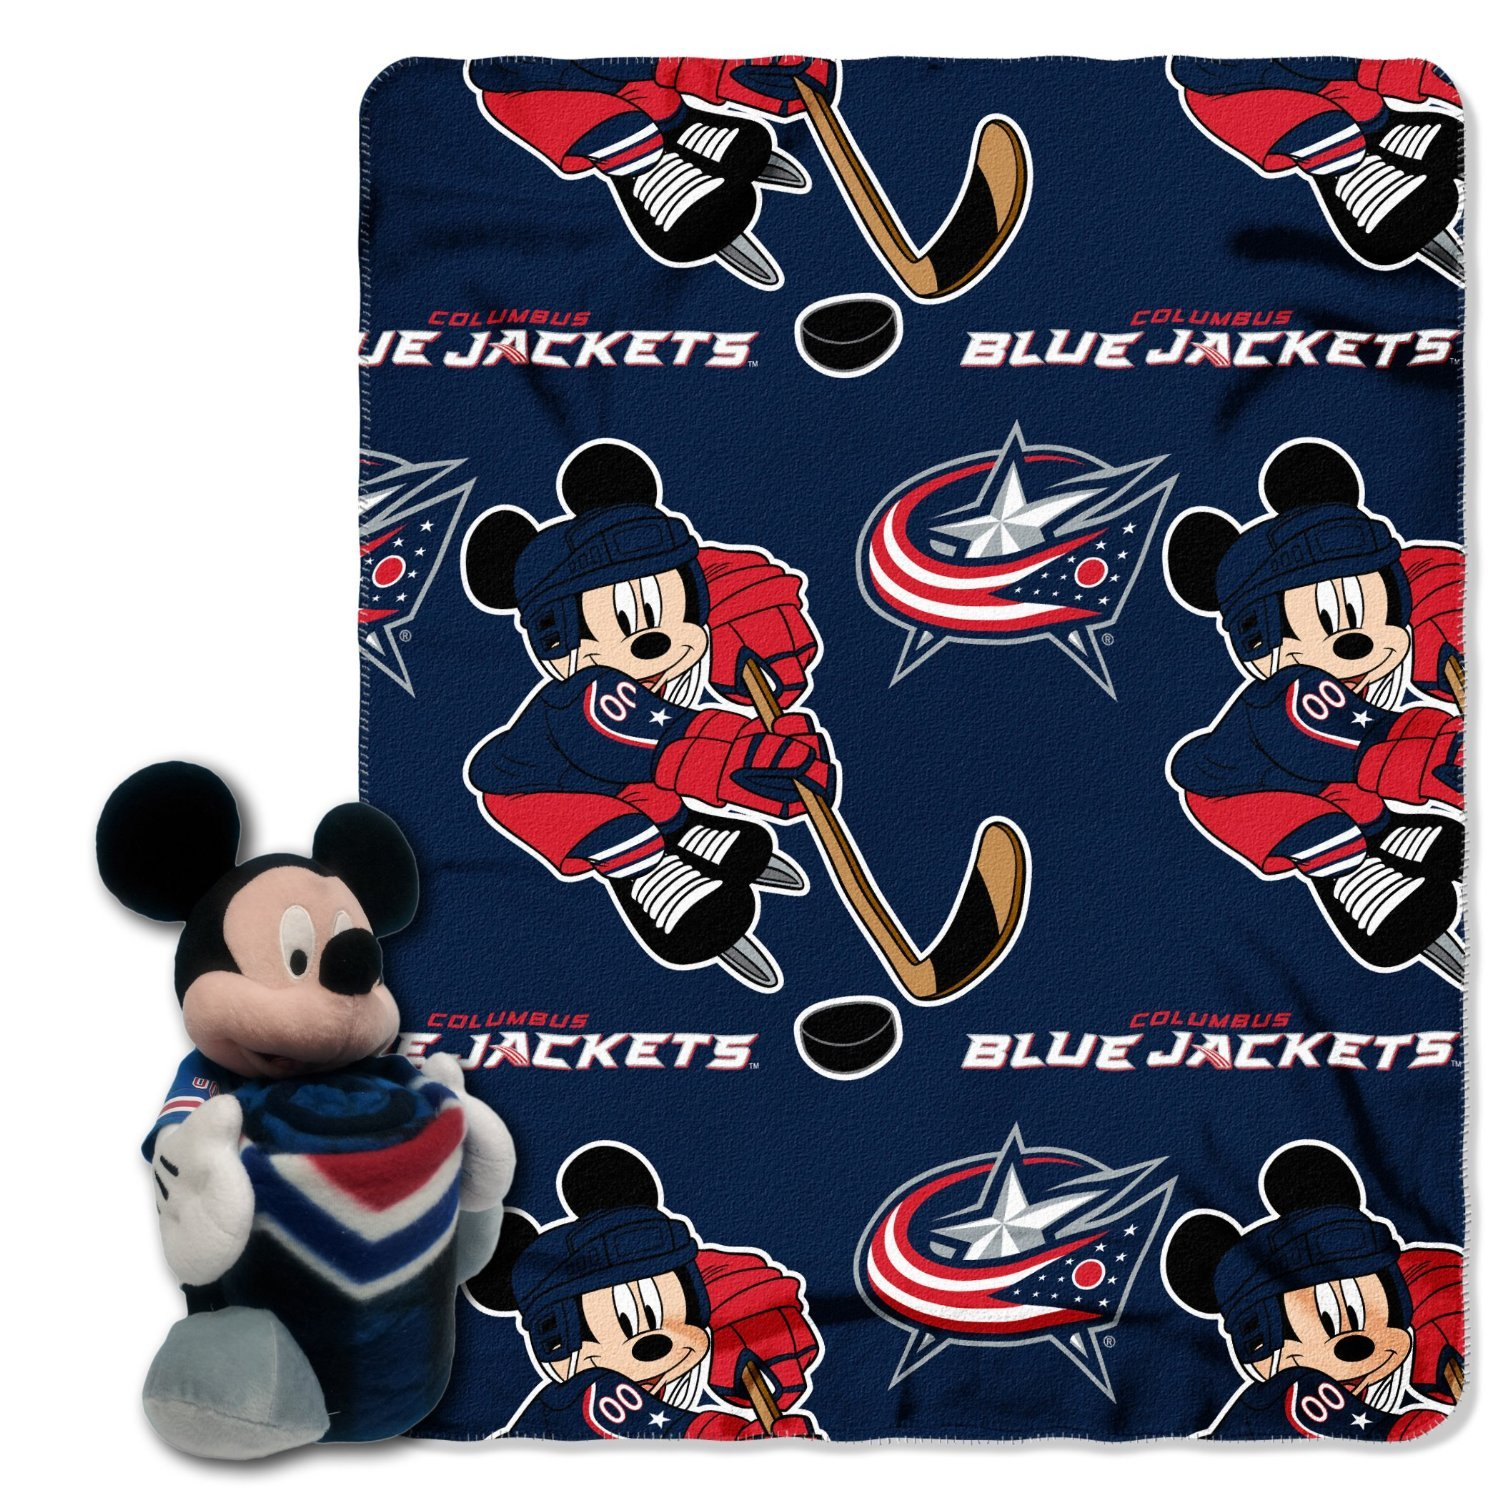 The Northwest Company Officially Licensed NHL Columbus Blue Jackets Ice Warriors Co Disney's Mickey Mouse Hugger and Fleece Throw Blanket Set, 40'' x 50'', Multi Color by The Northwest Company